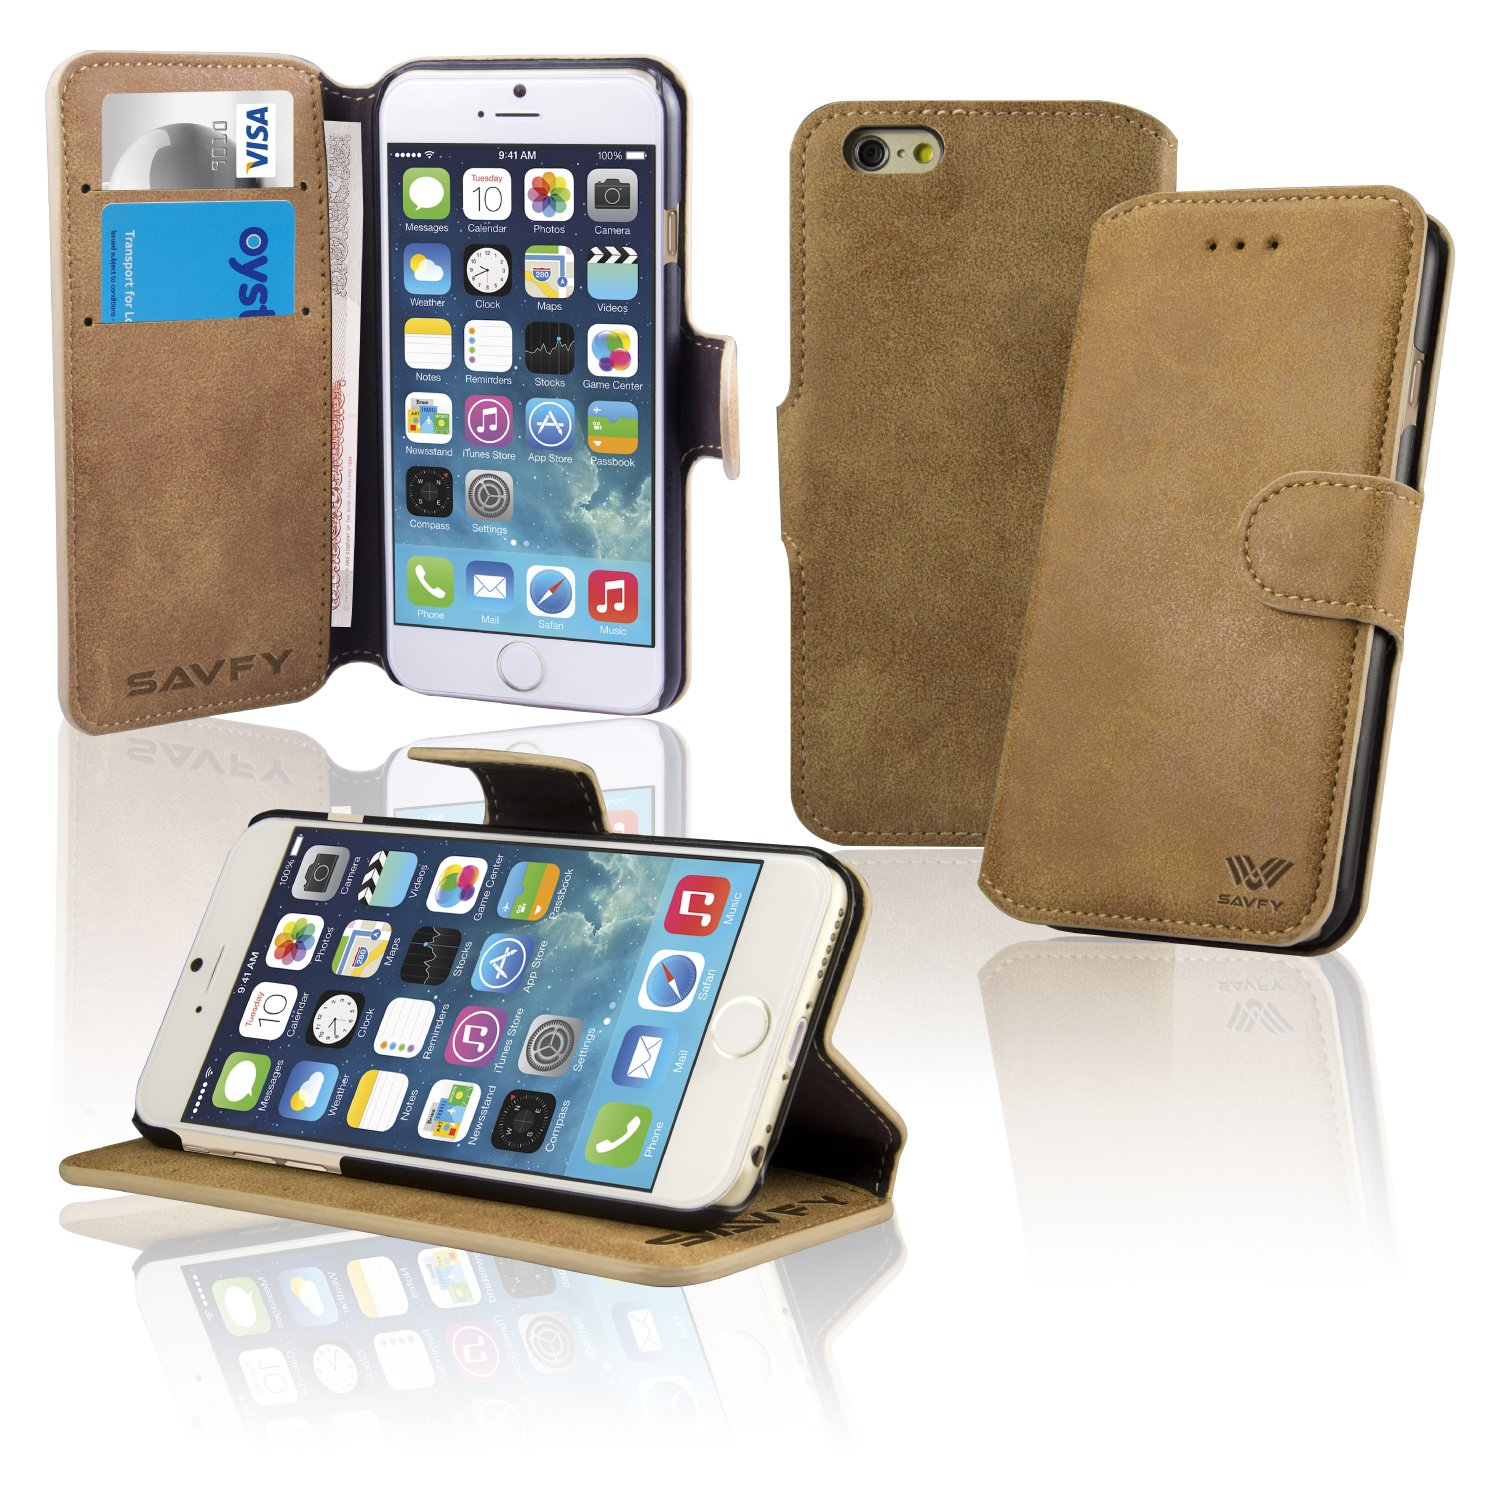 Iphone 6s plus case leather wallet coversavfy iphone 6 amazon iphone 6s plus case leather wallet coversavfy iphone 6 amazon electronics reheart Gallery